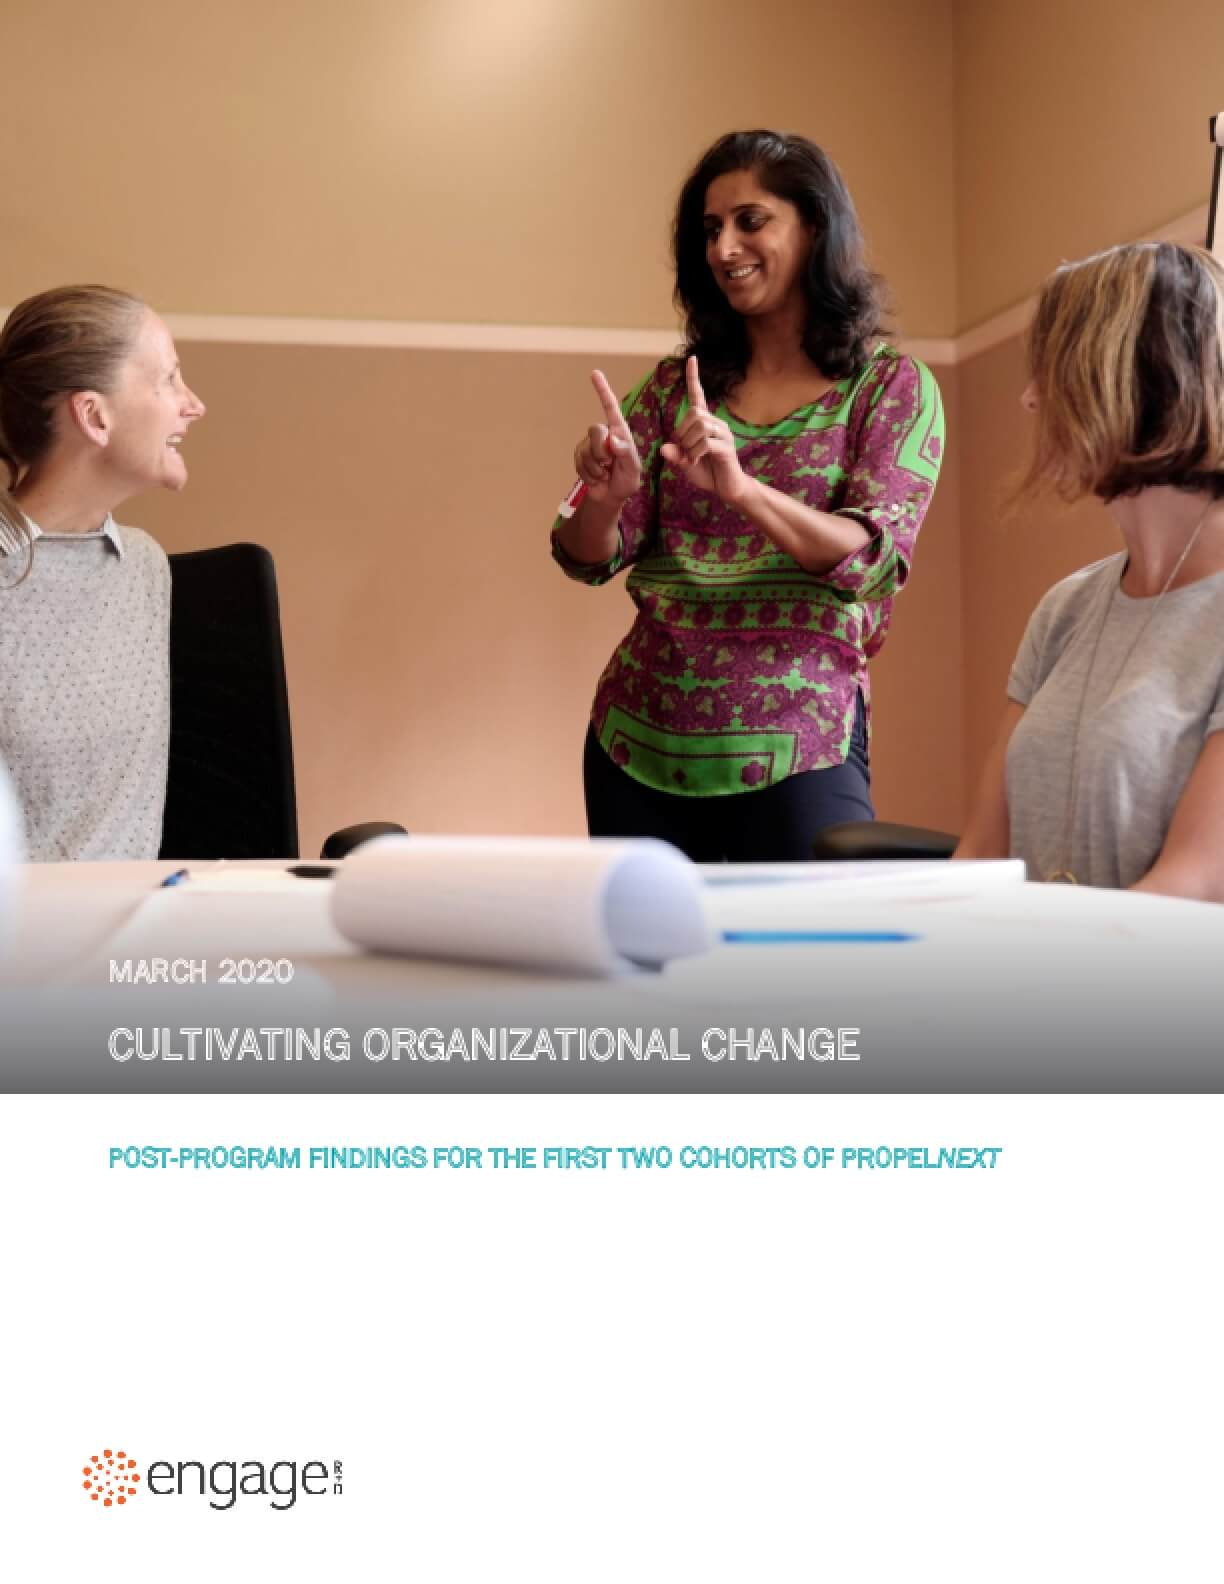 Cultivating Organizational Change: Post-Program Findings from the First Two Cohorts of PropelNext